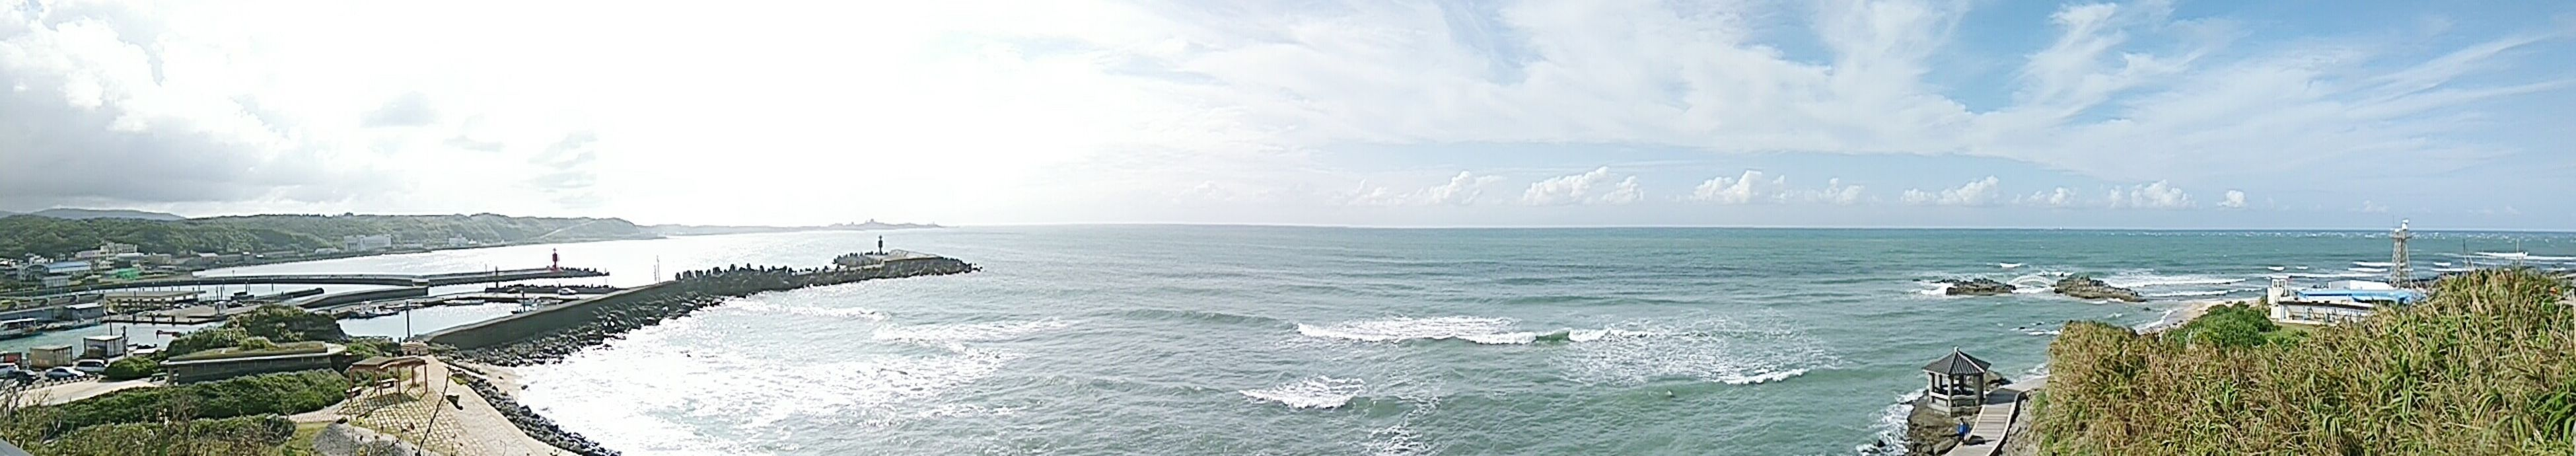 water, sea, high angle view, horizon over water, scenics, panoramic, beauty in nature, tranquil scene, sky, tranquility, idyllic, tourism, travel destinations, non-urban scene, vacations, nature, outdoors, day, cloud - sky, seascape, cliff, coastline, aerial view, shore, remote, majestic